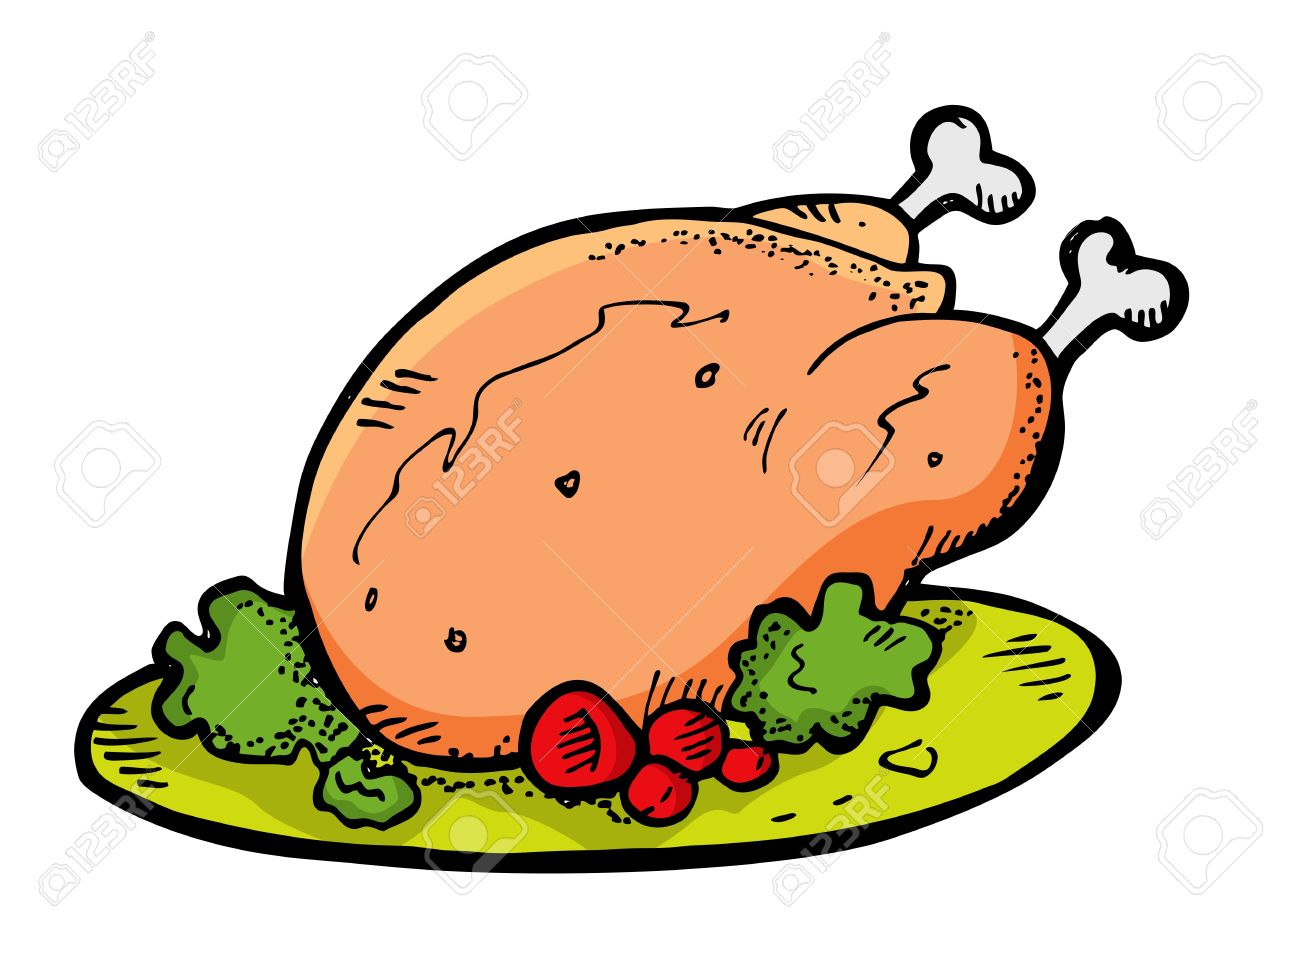 Baked chicken clipart.